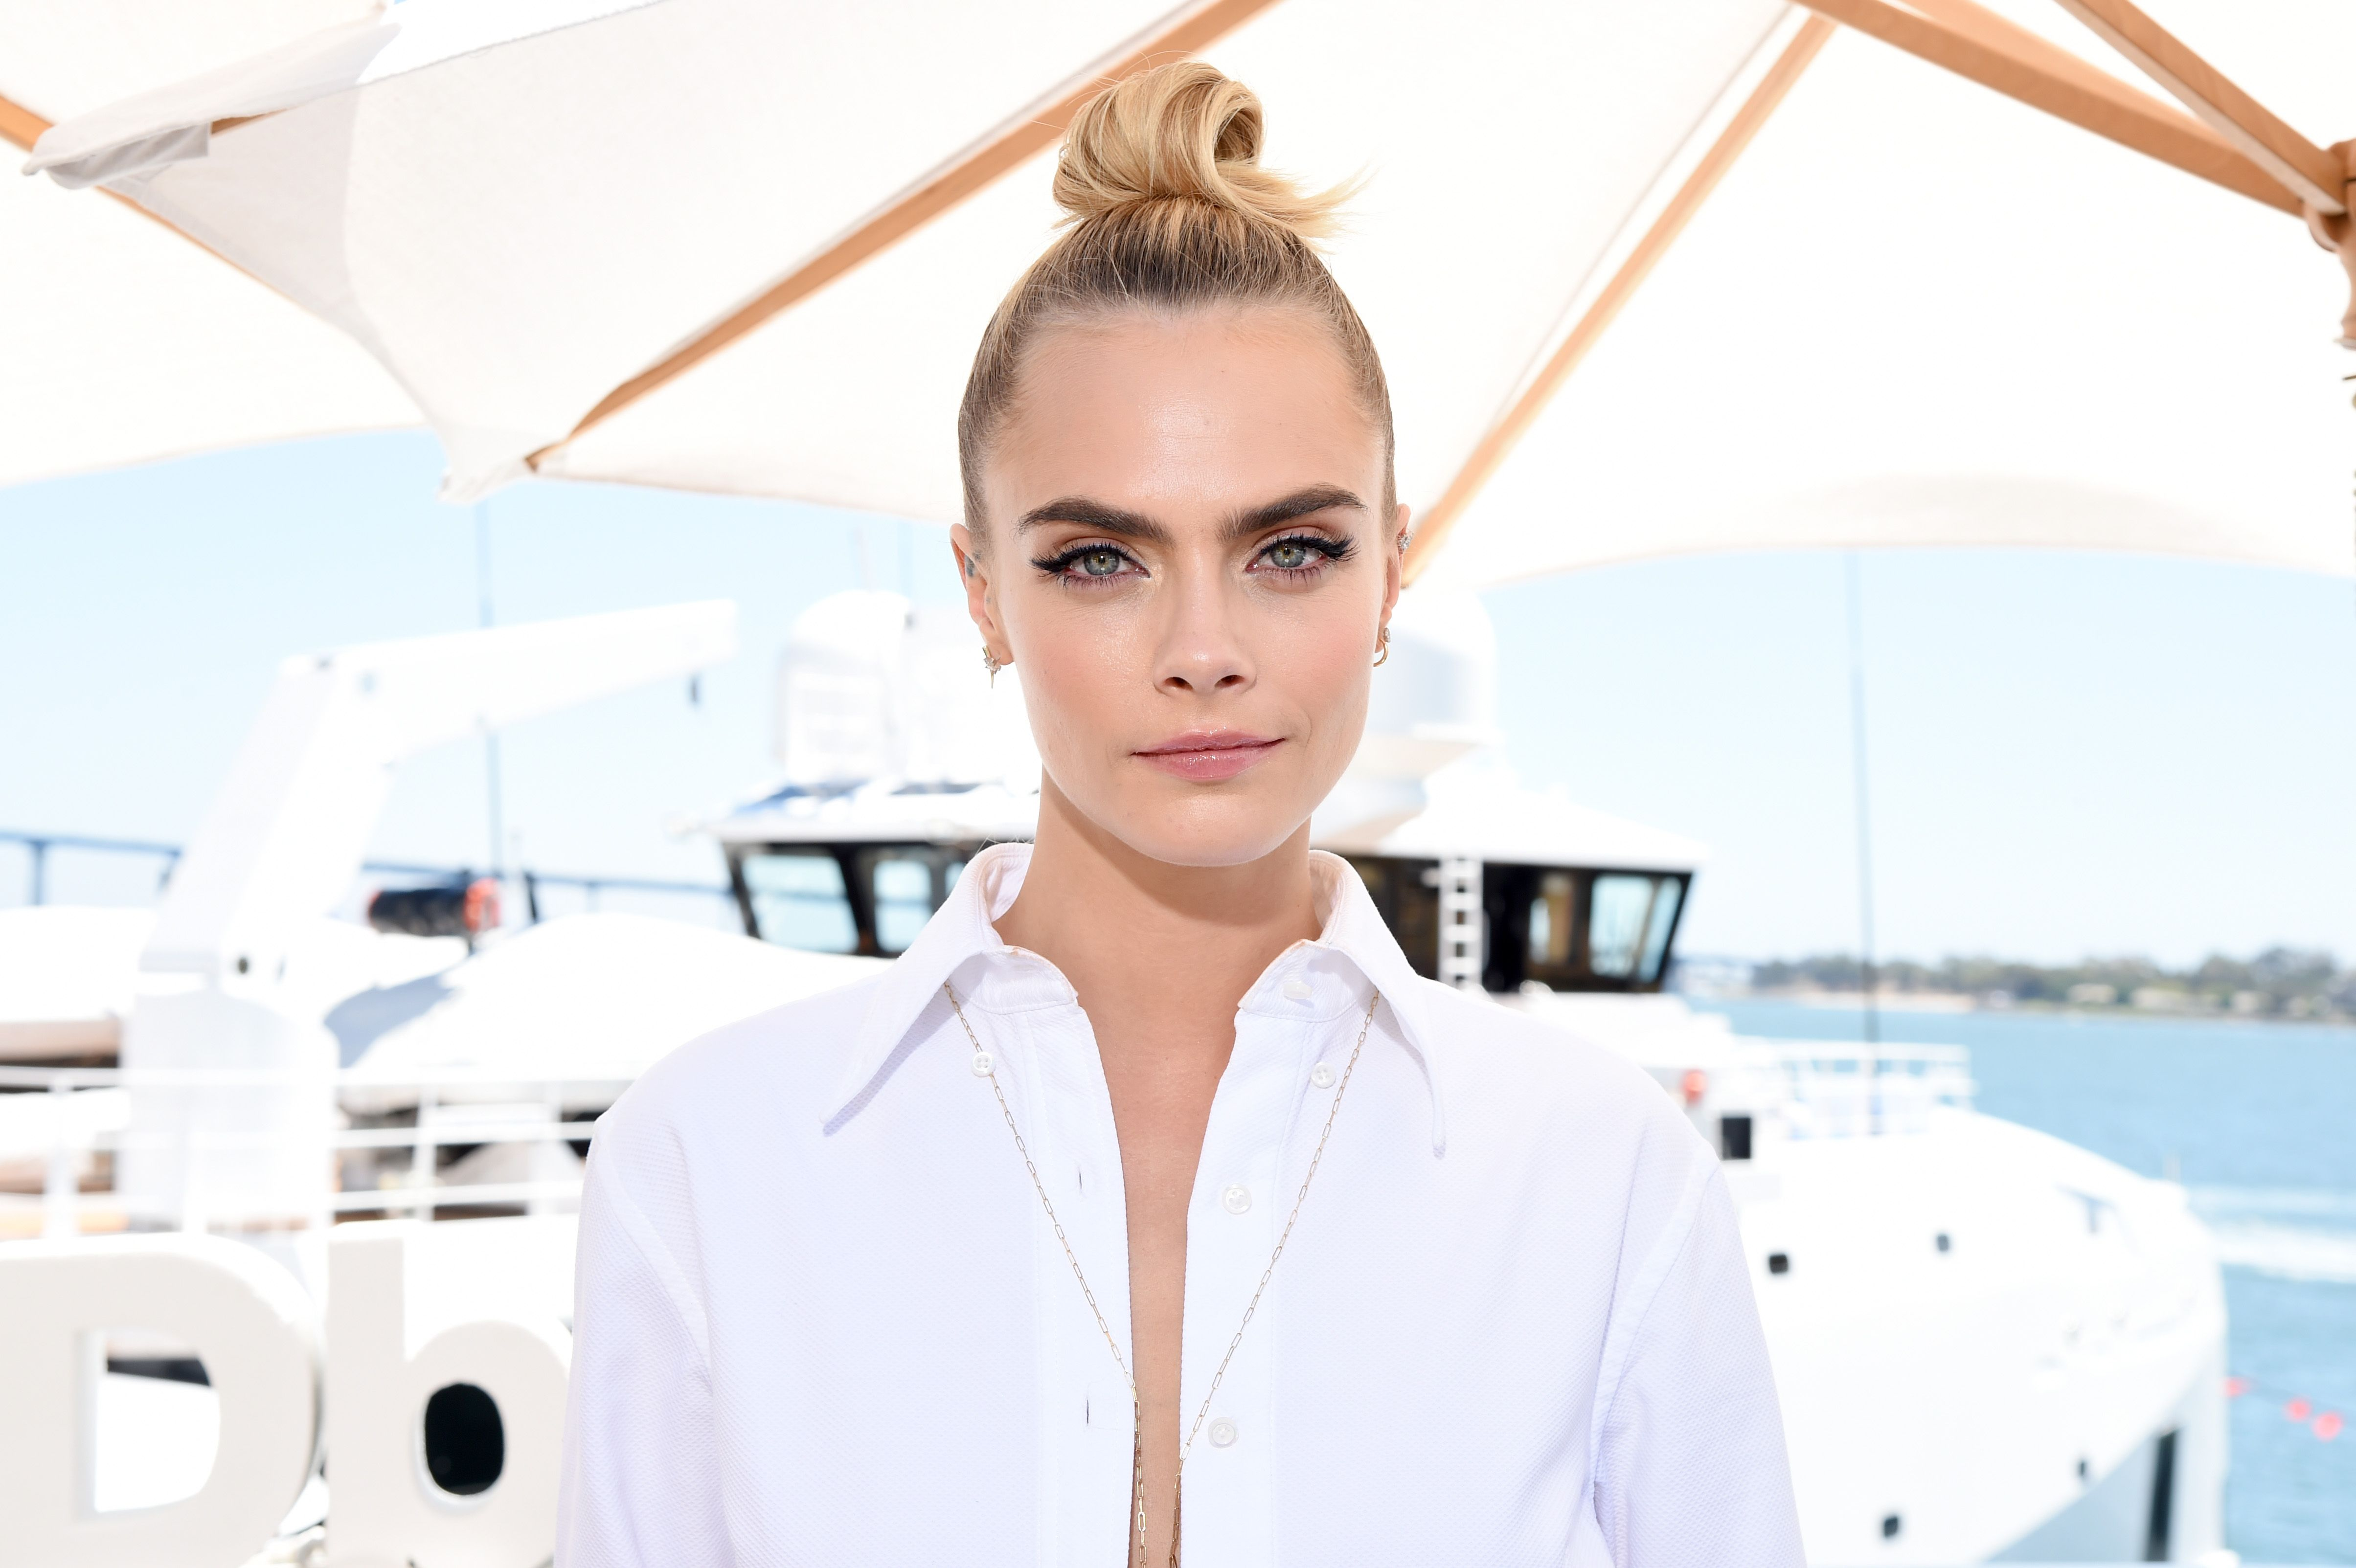 Cara Delevingne Dragged Justin Bieber After He Said She's His Least Favorite of Hailey Baldwin's Friends